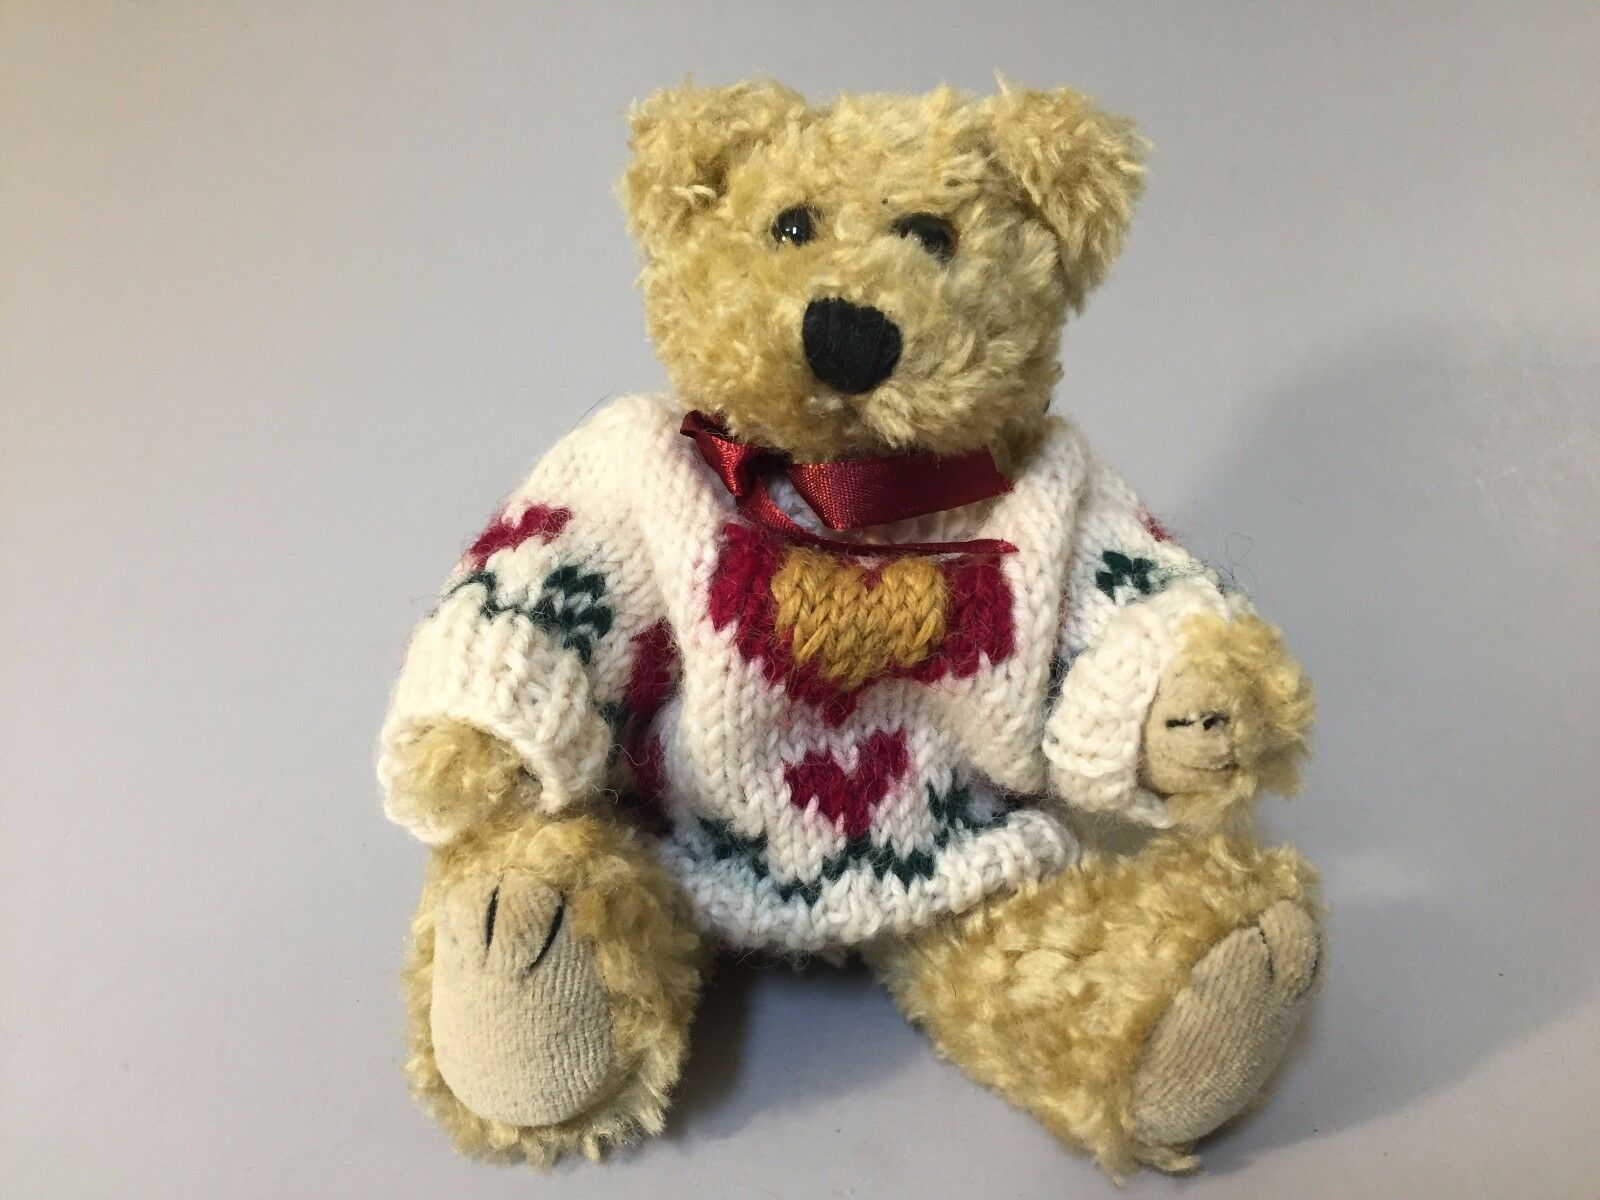 BROWN STUFFED BEARS BEAR, BOYDS BEARS STUFFED Artemus, bear with sweater, NWT plush bear a3cd58